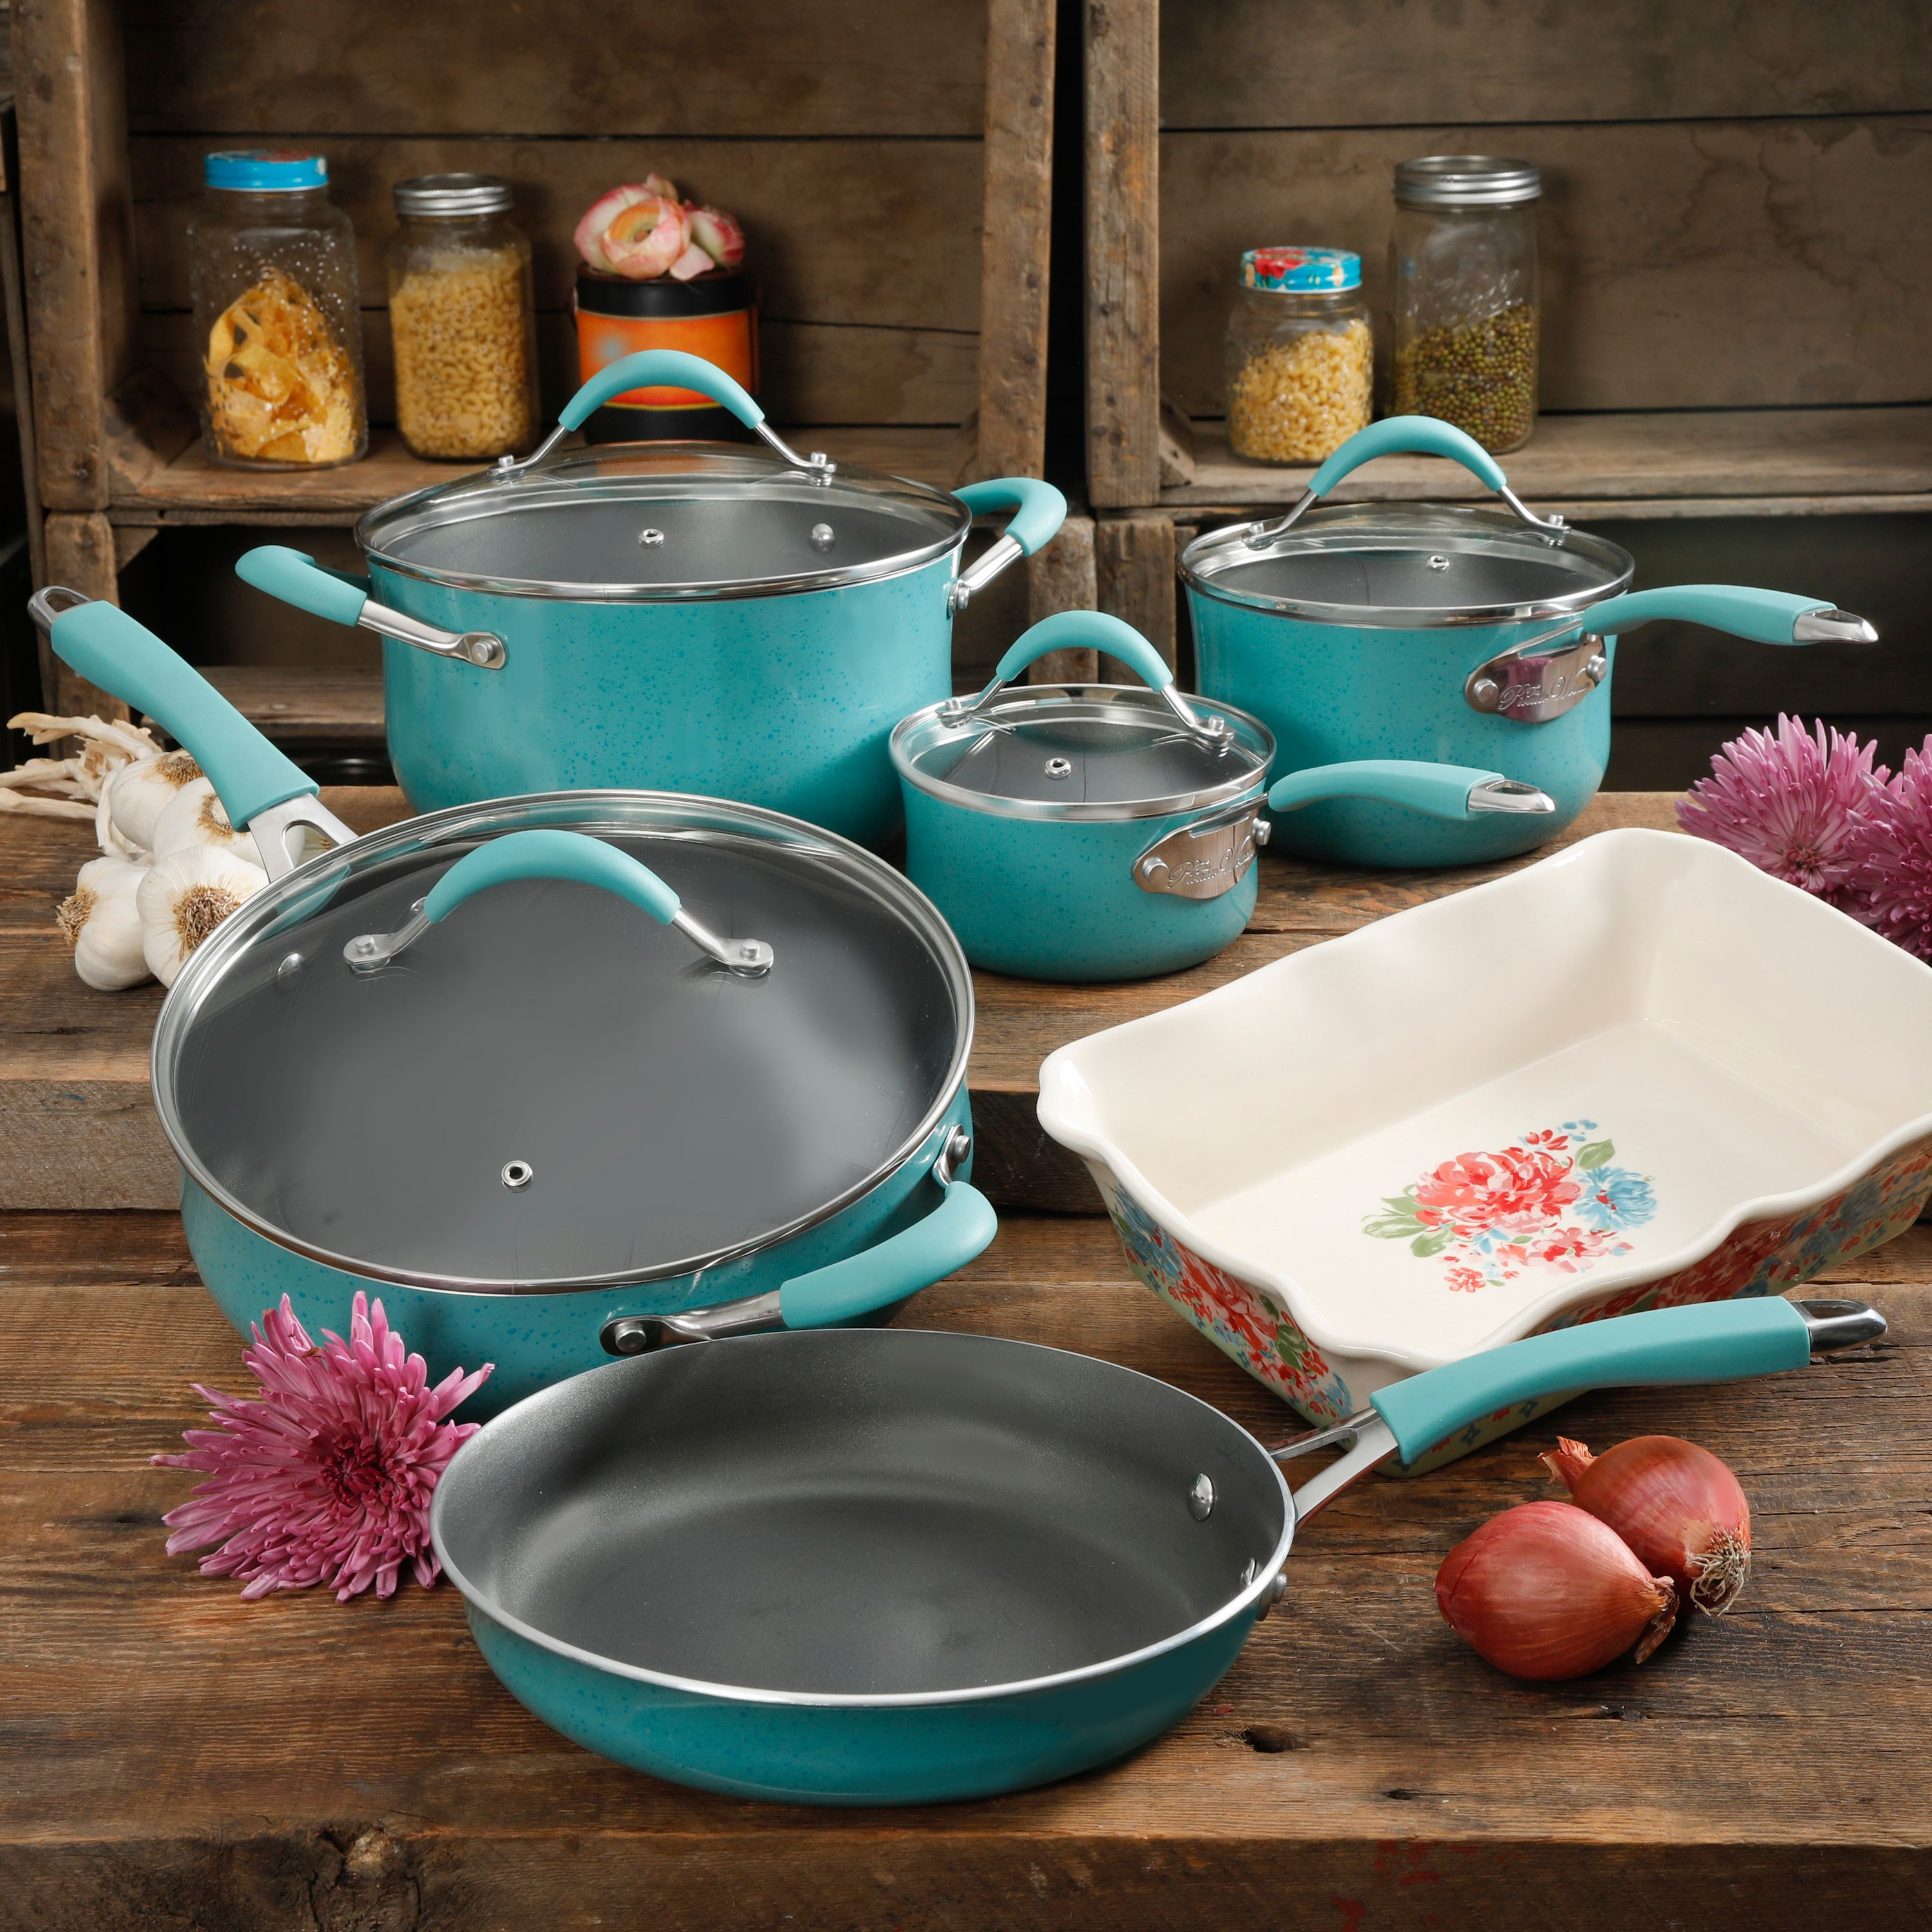 The Pioneer Woman Frontier Speckle Turquoise 10-Piece Cookware Set